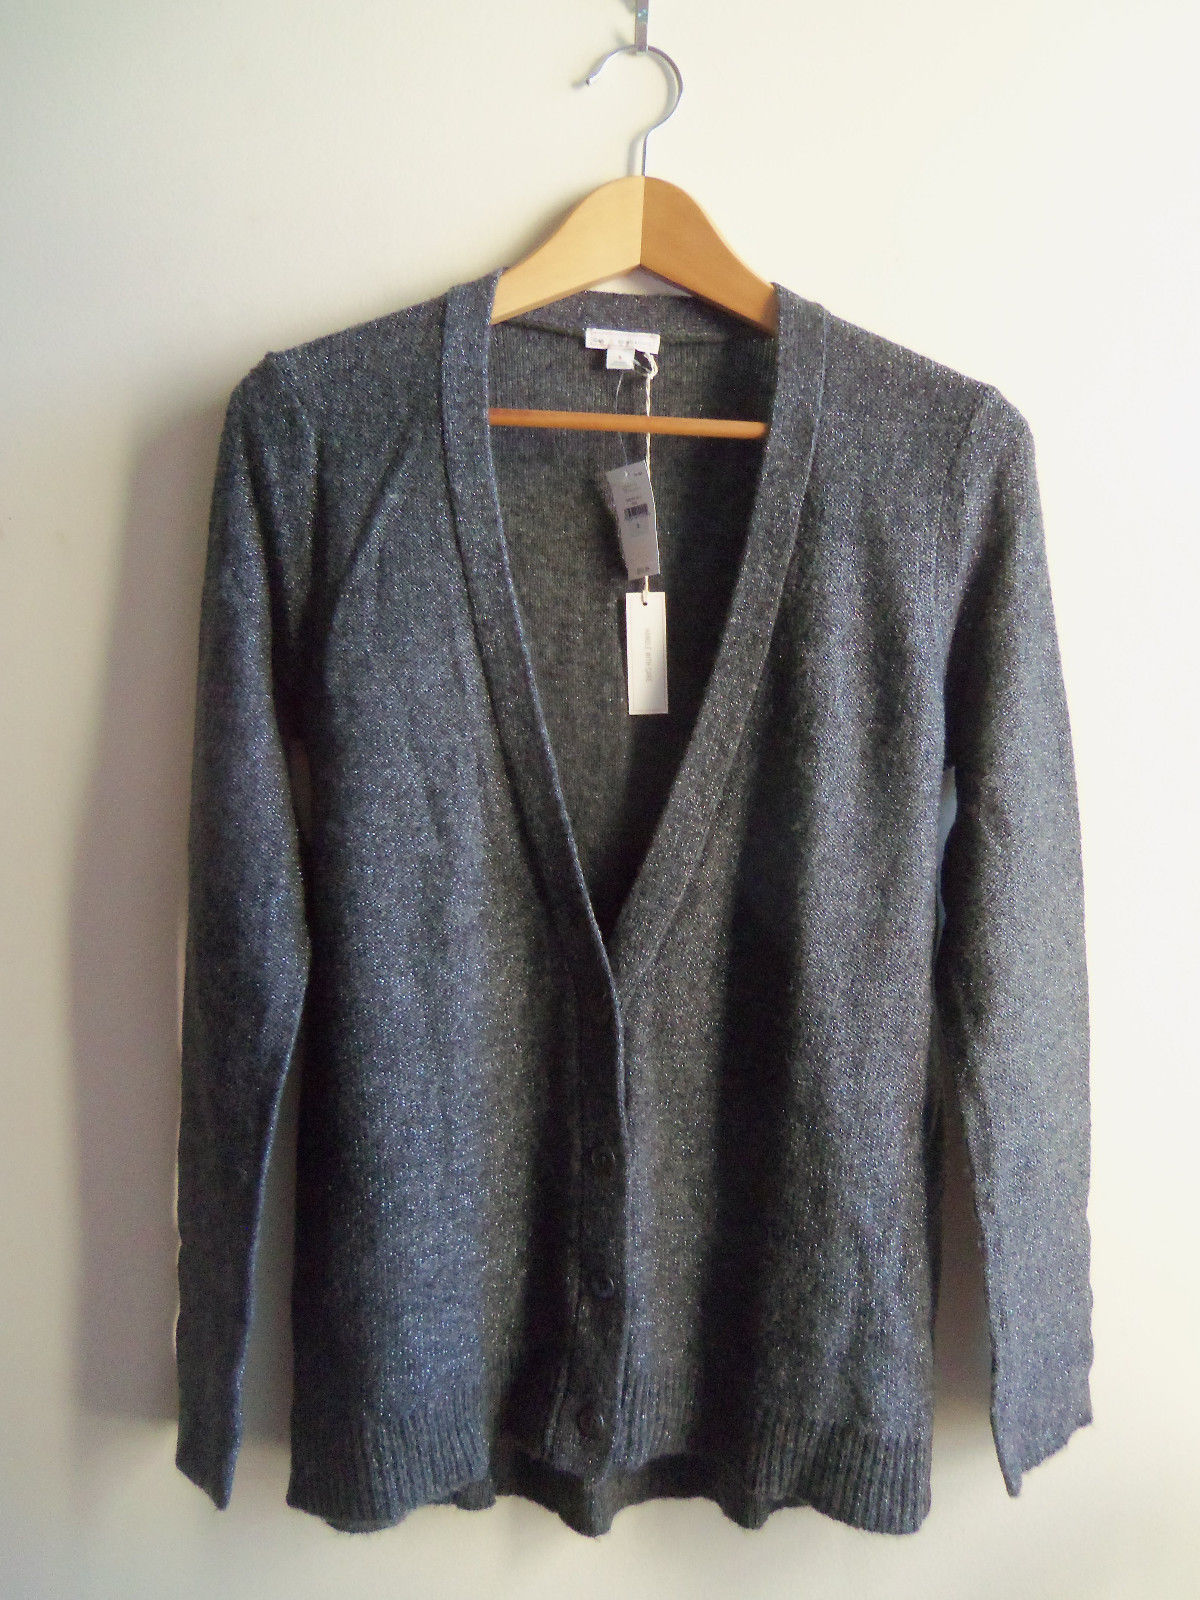 Gap Women's Shimmer Metallic Wool Blend Cardigan Sweater Gray Solid Size S, NWT - $38.08